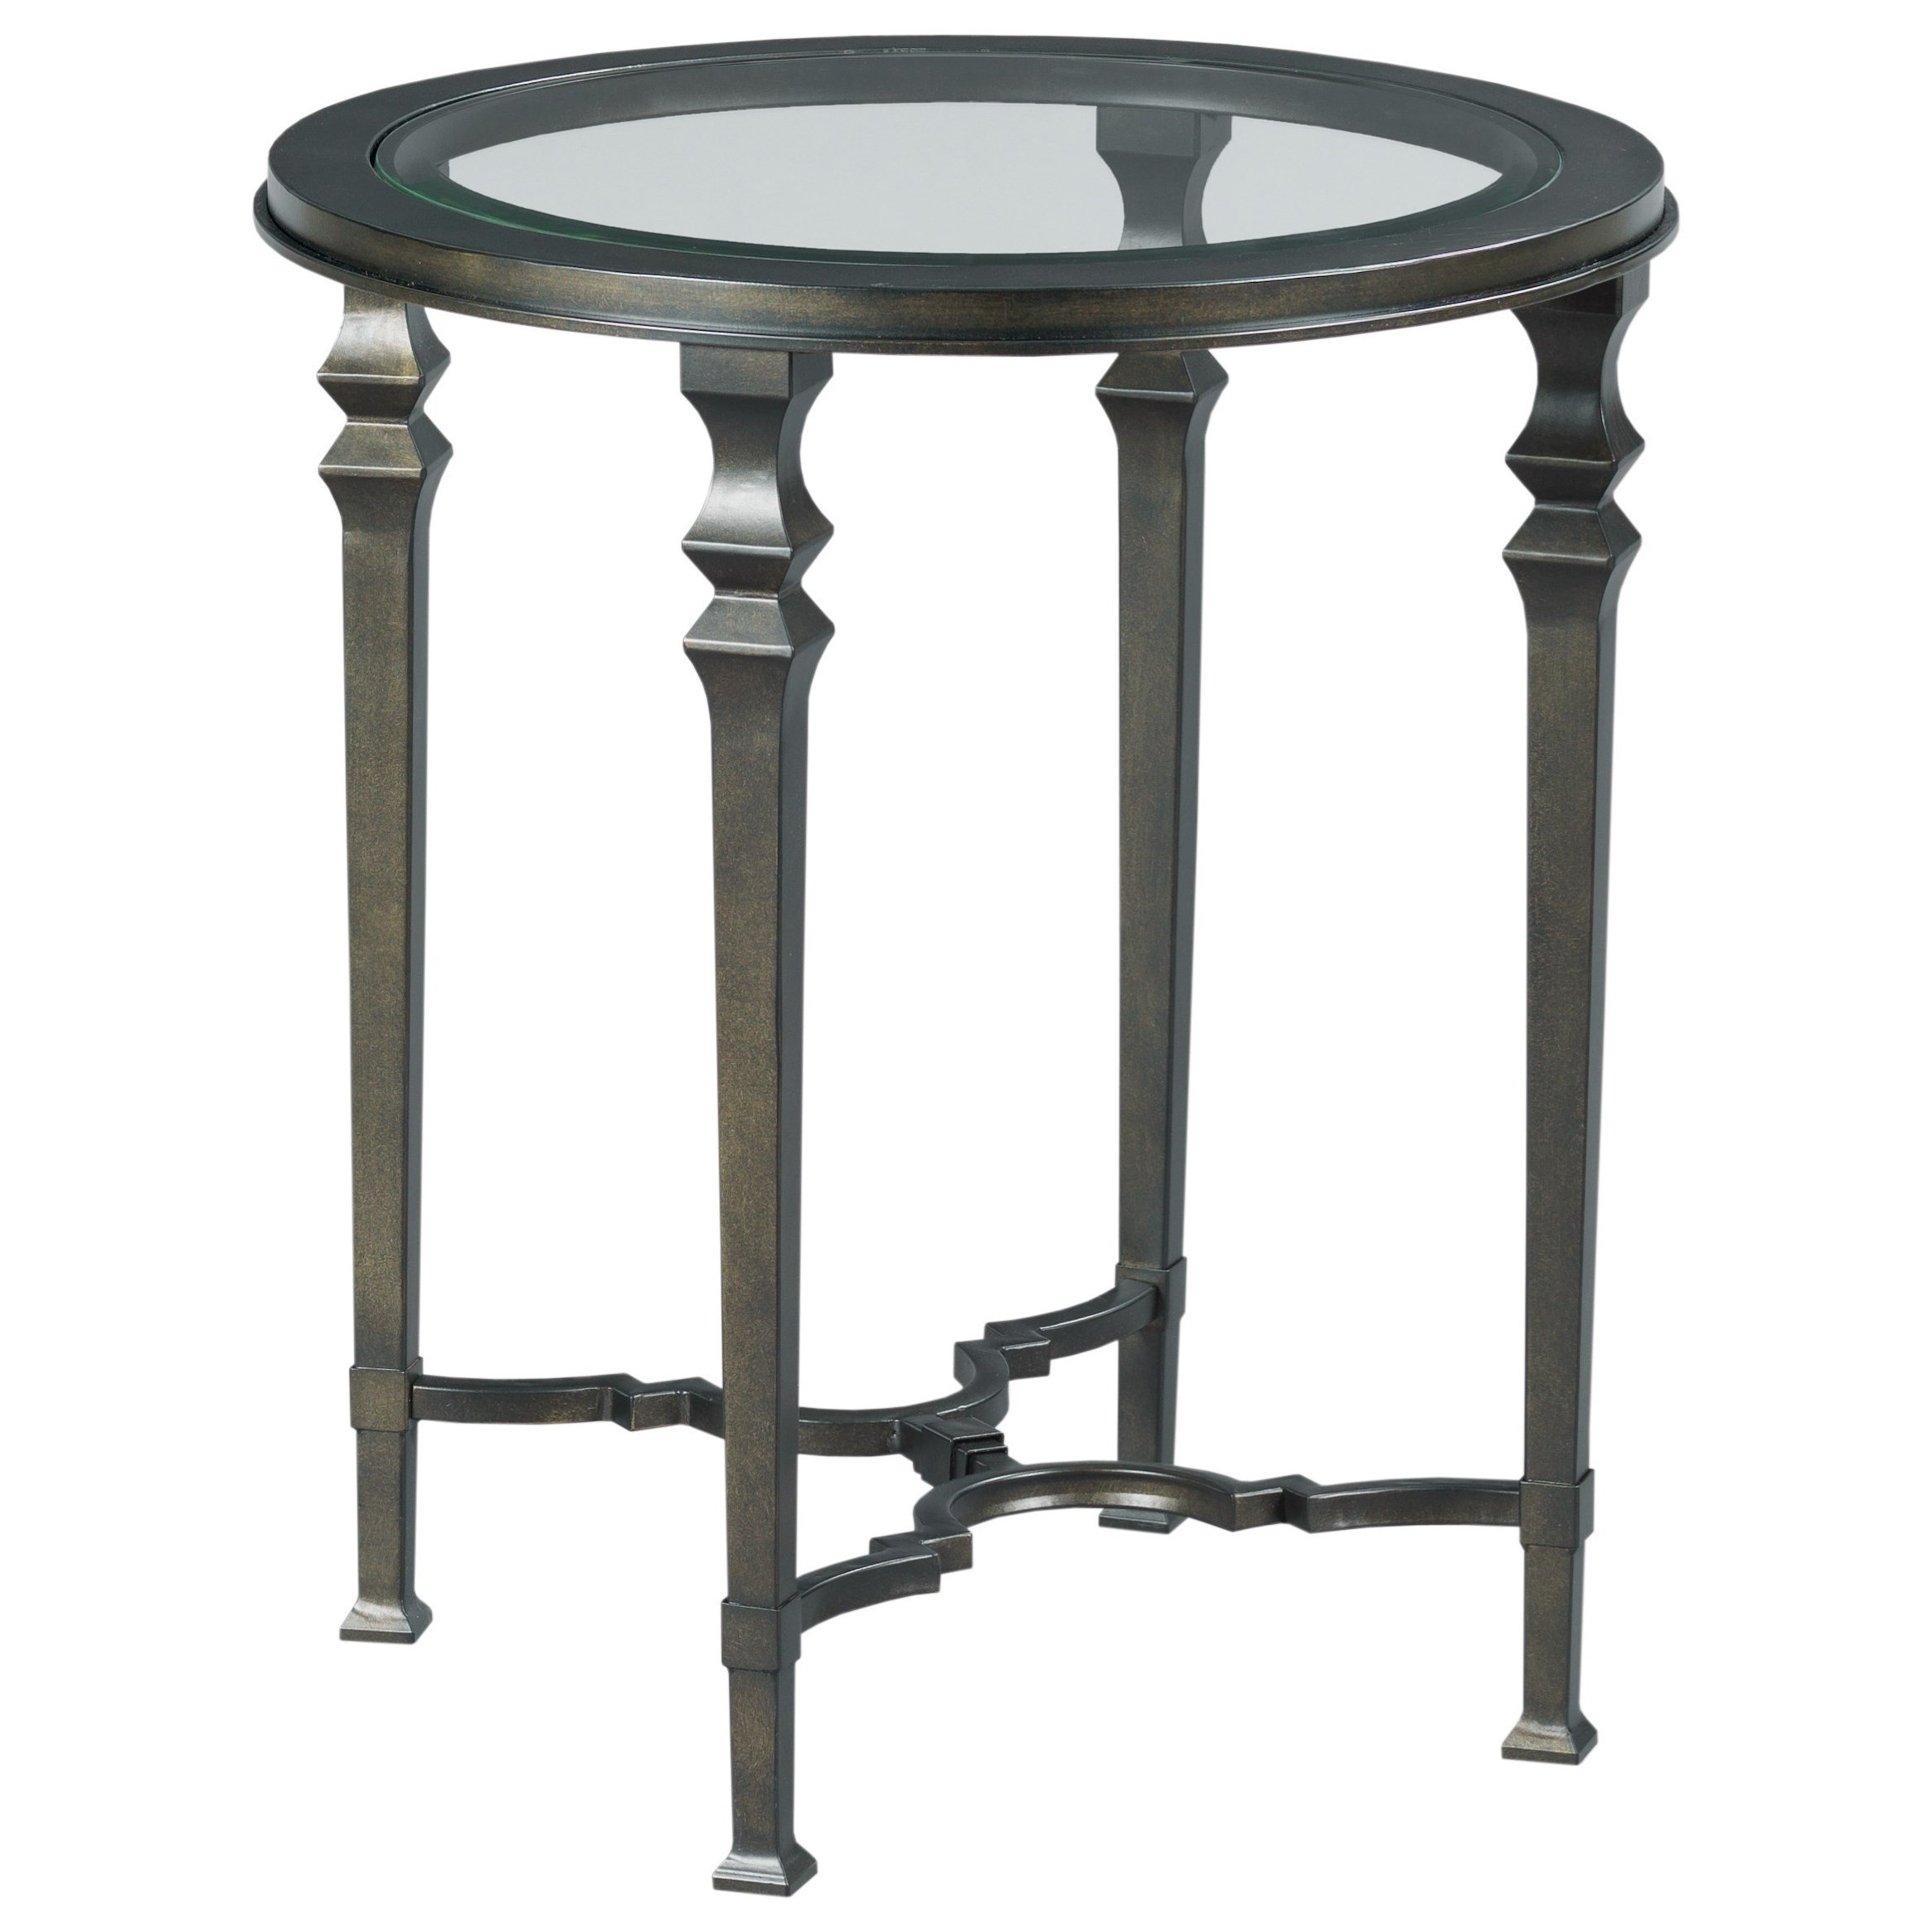 Metal Round End Table with Glass Top